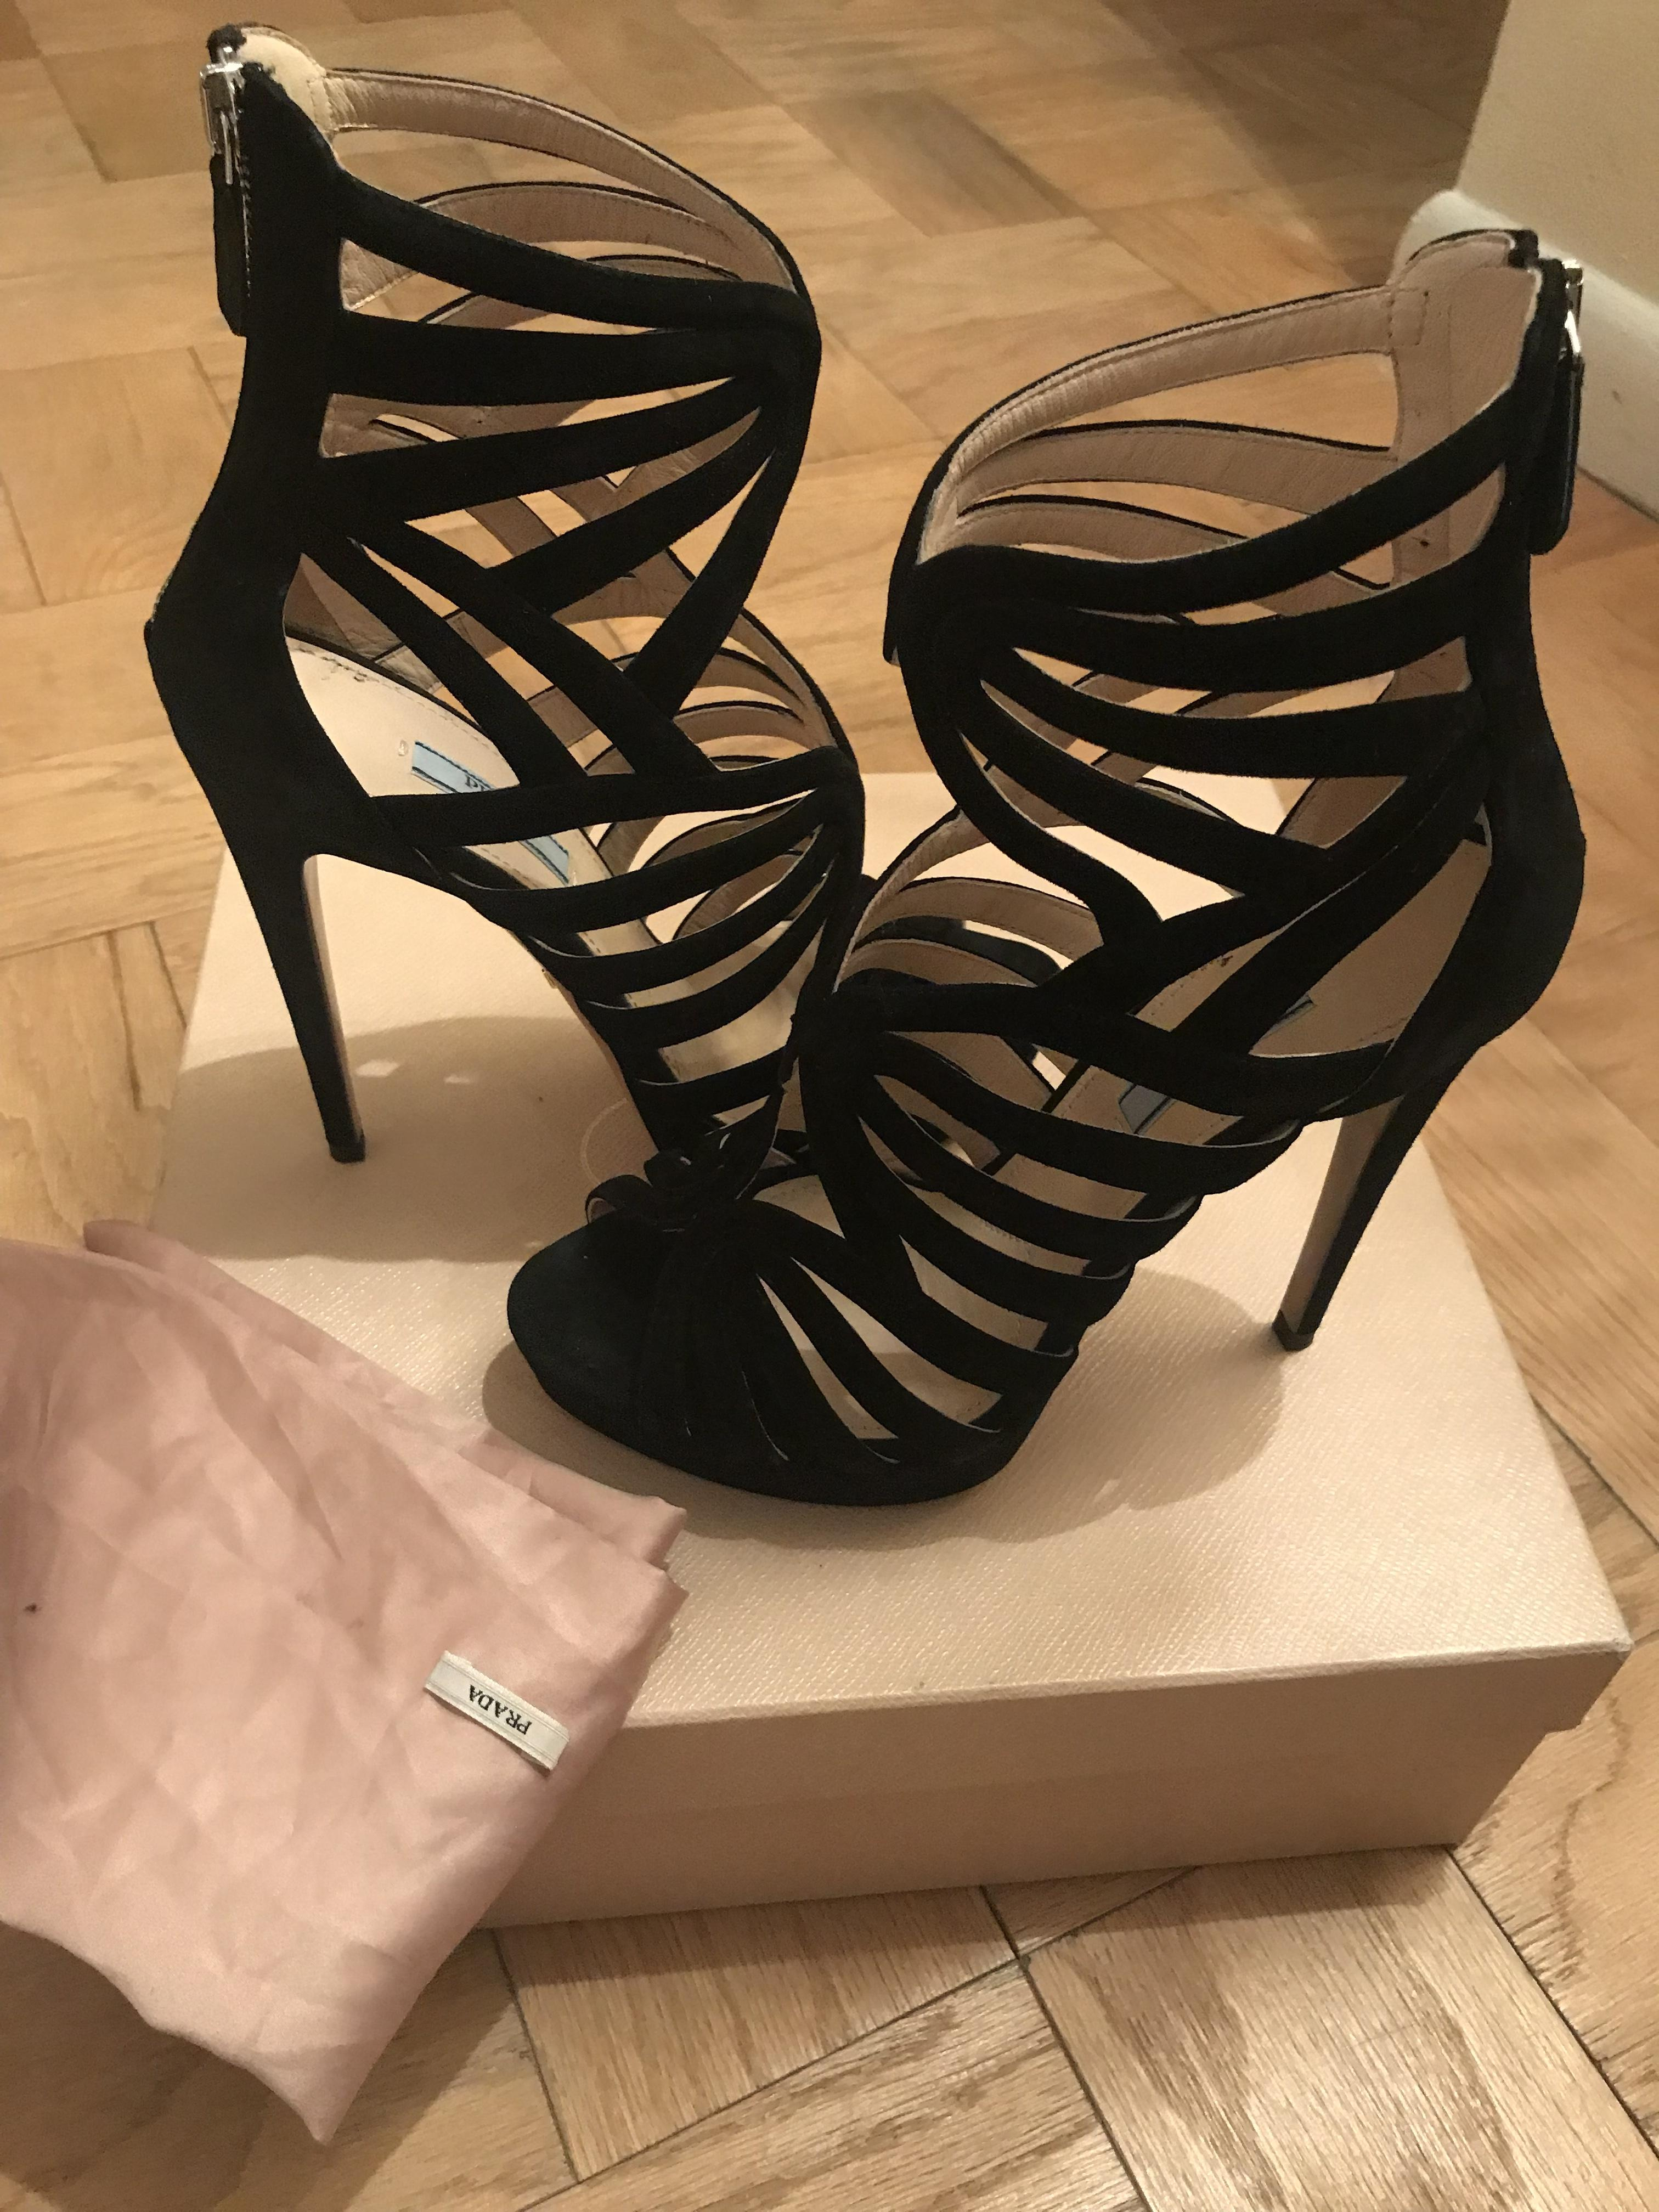 cc074338e8d US 9) Regular Prada Black Cage Sandals Size Size Size EU 39 (Approx. US 9)  Regular